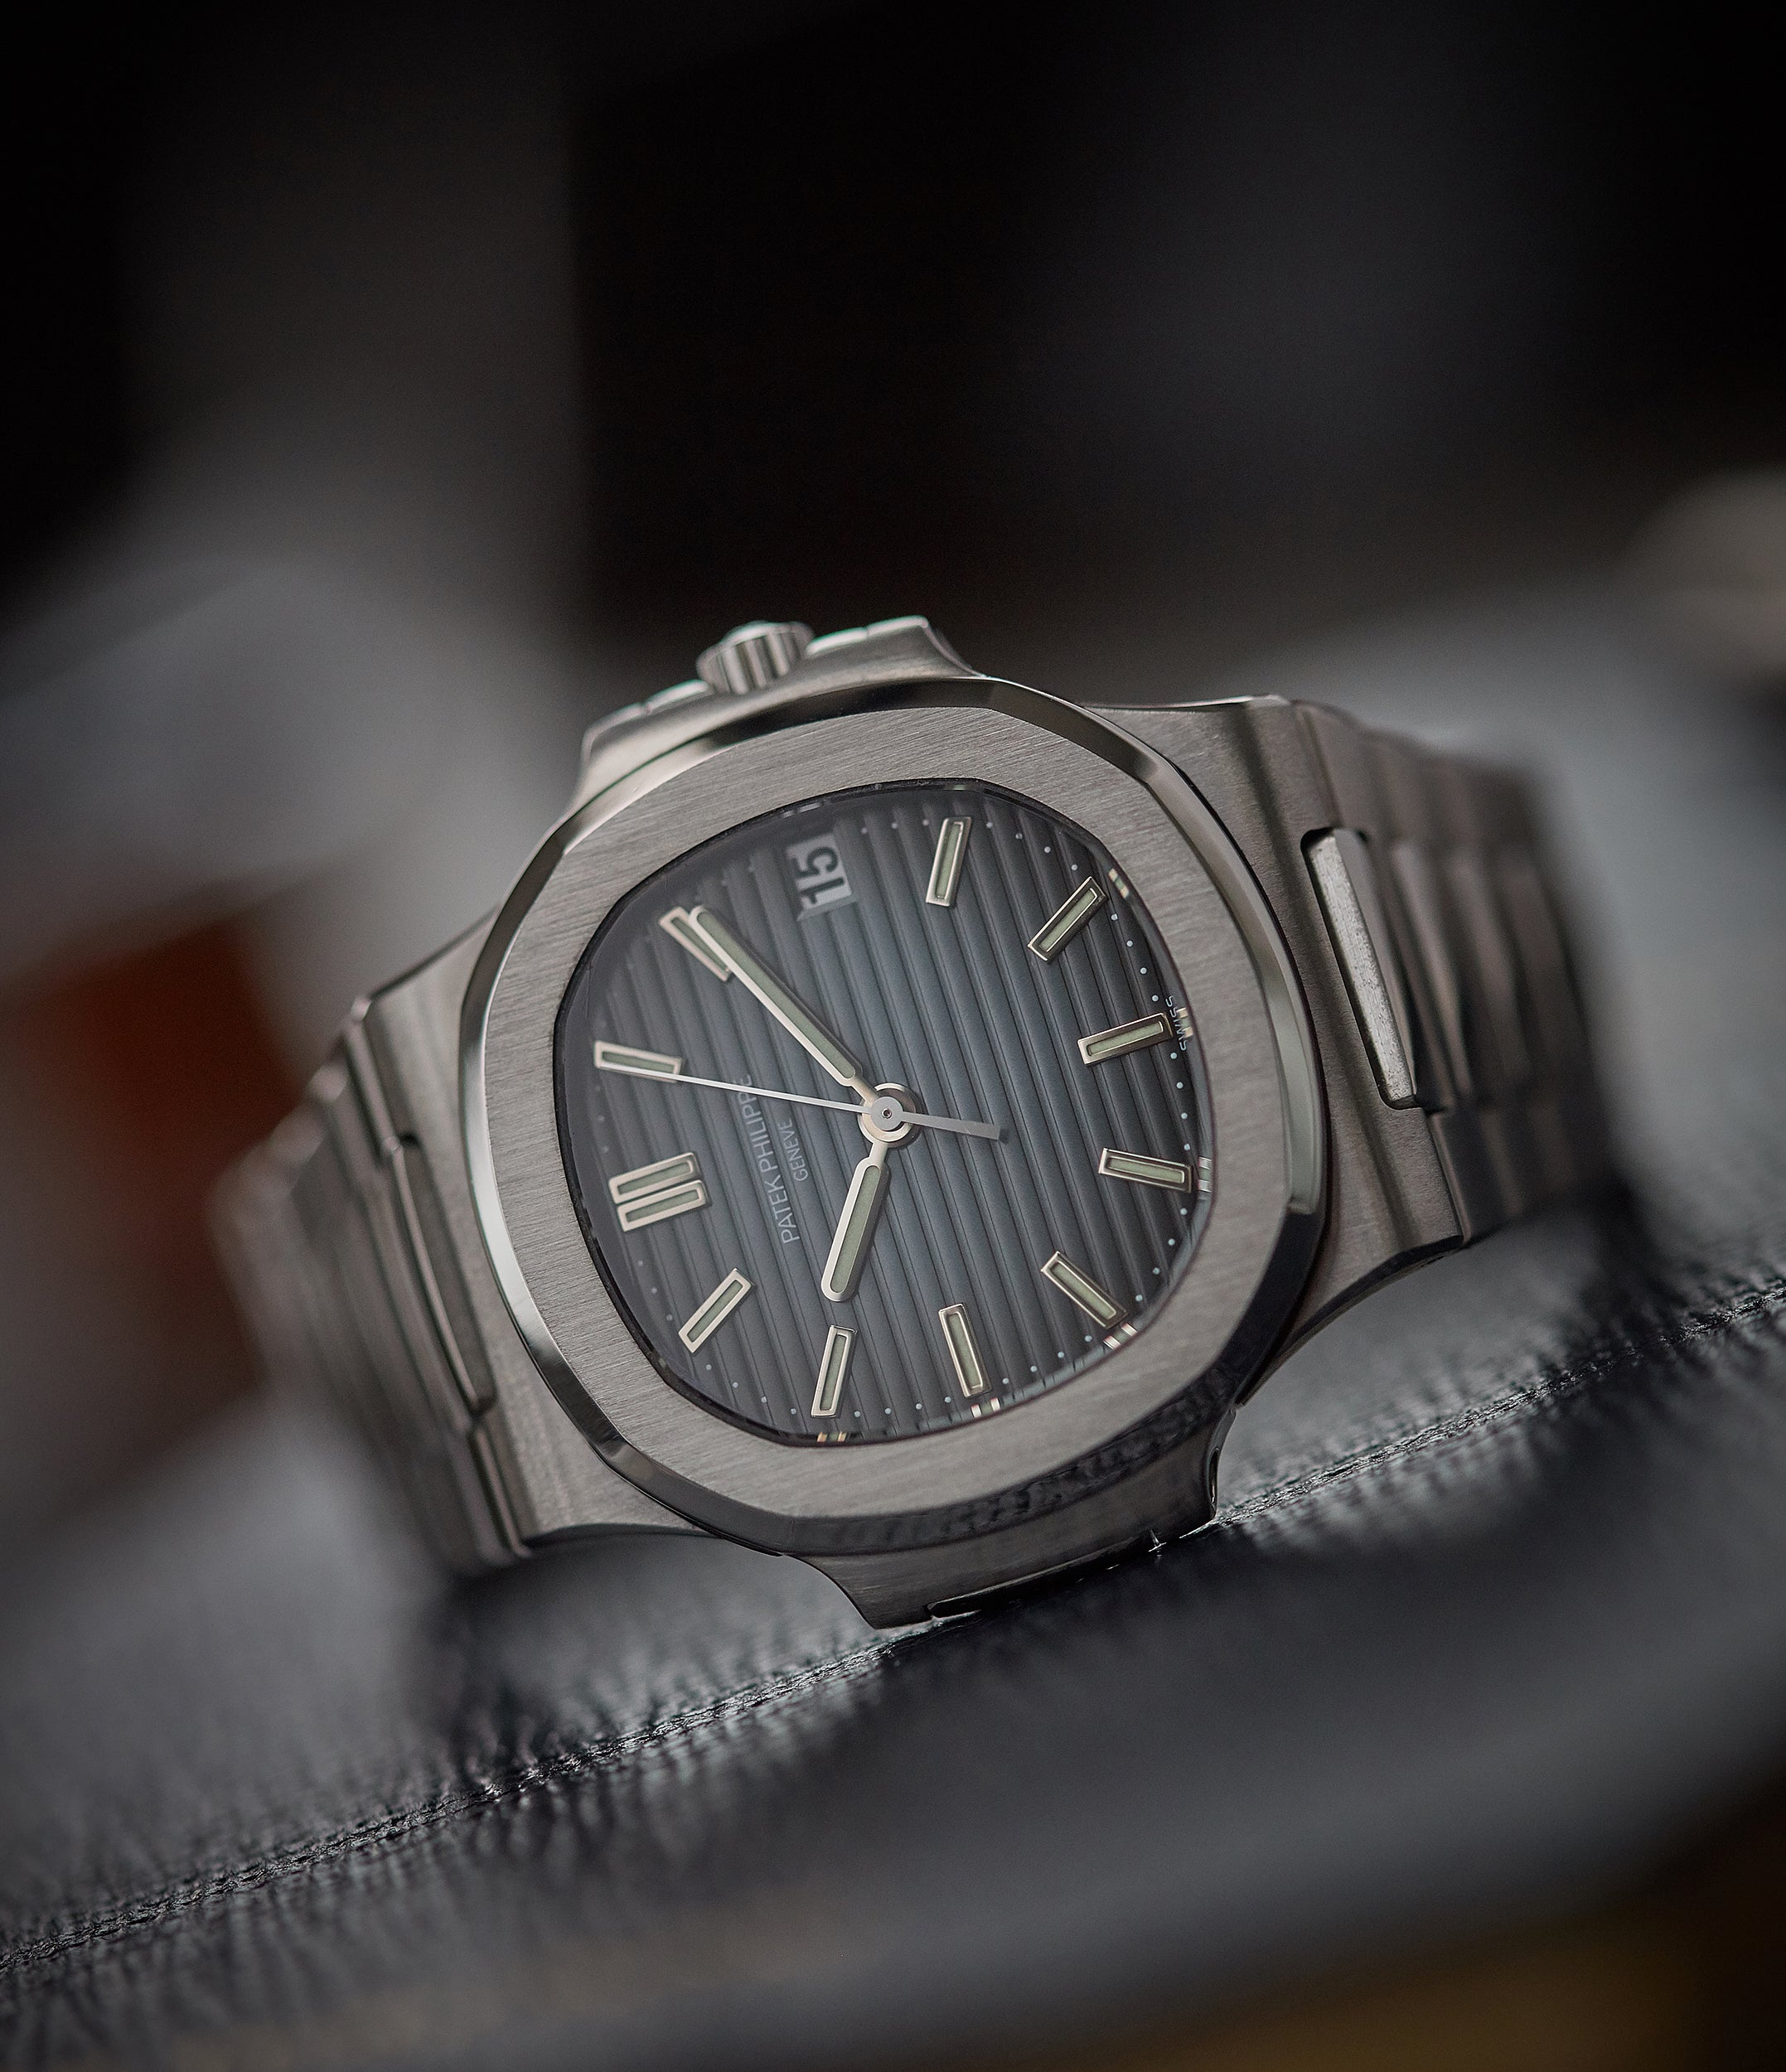 shop pre-owned Patek Philippe Nautilus 5800/1A-001 steel sport pre-owned watch for sale online at A Collected Man London UK specialist of rare watches